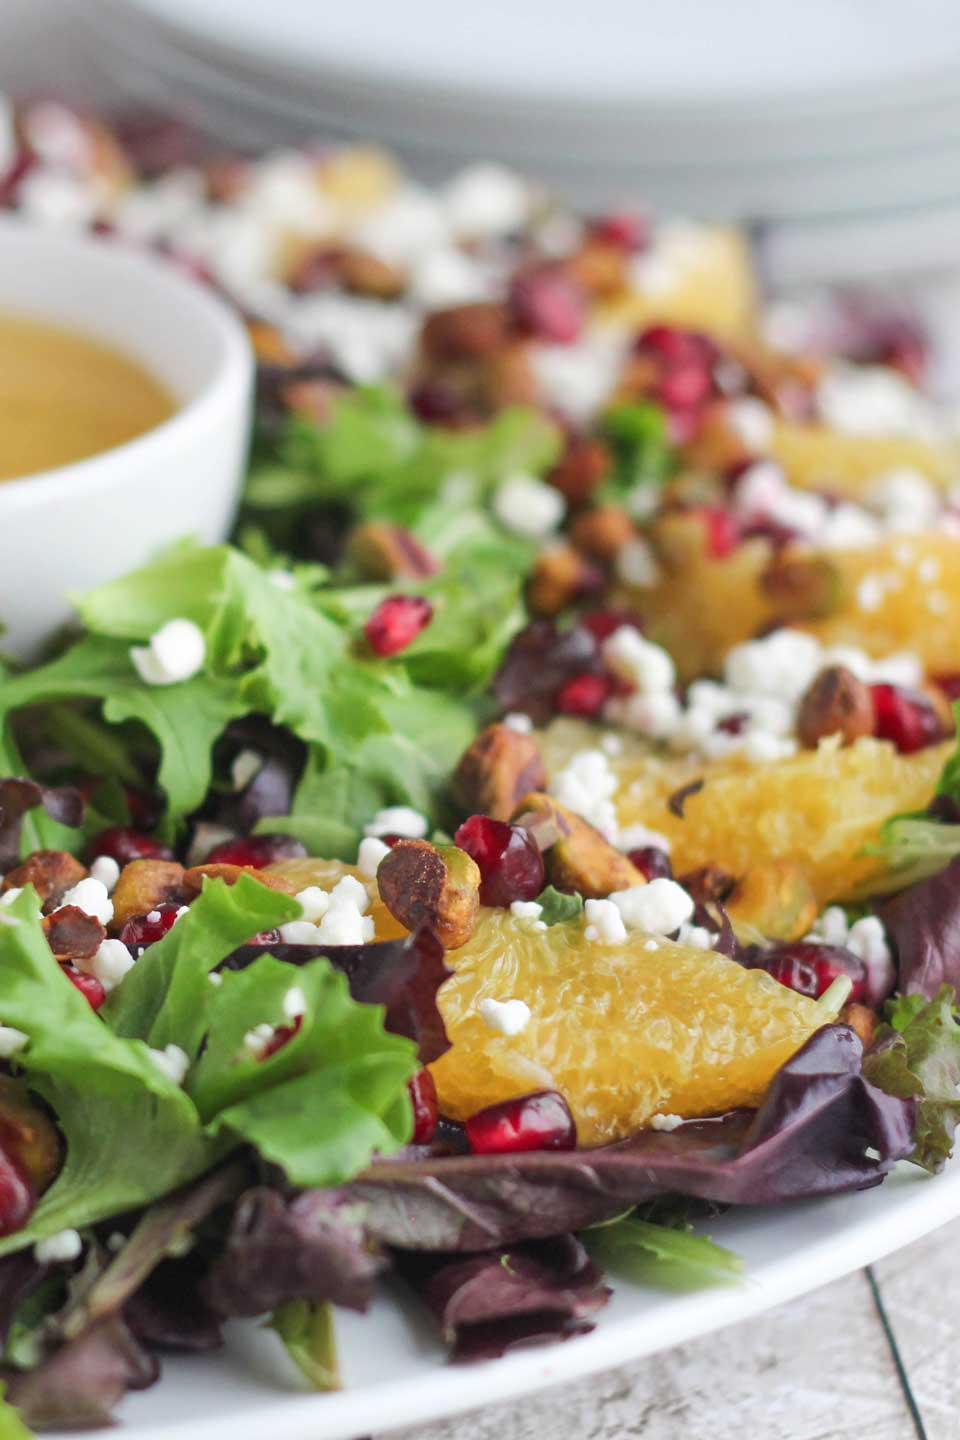 This Christmas Salad with goat cheese, pomegranate arils, crunchy pistachios, and juicy orange slices is a showstopper!